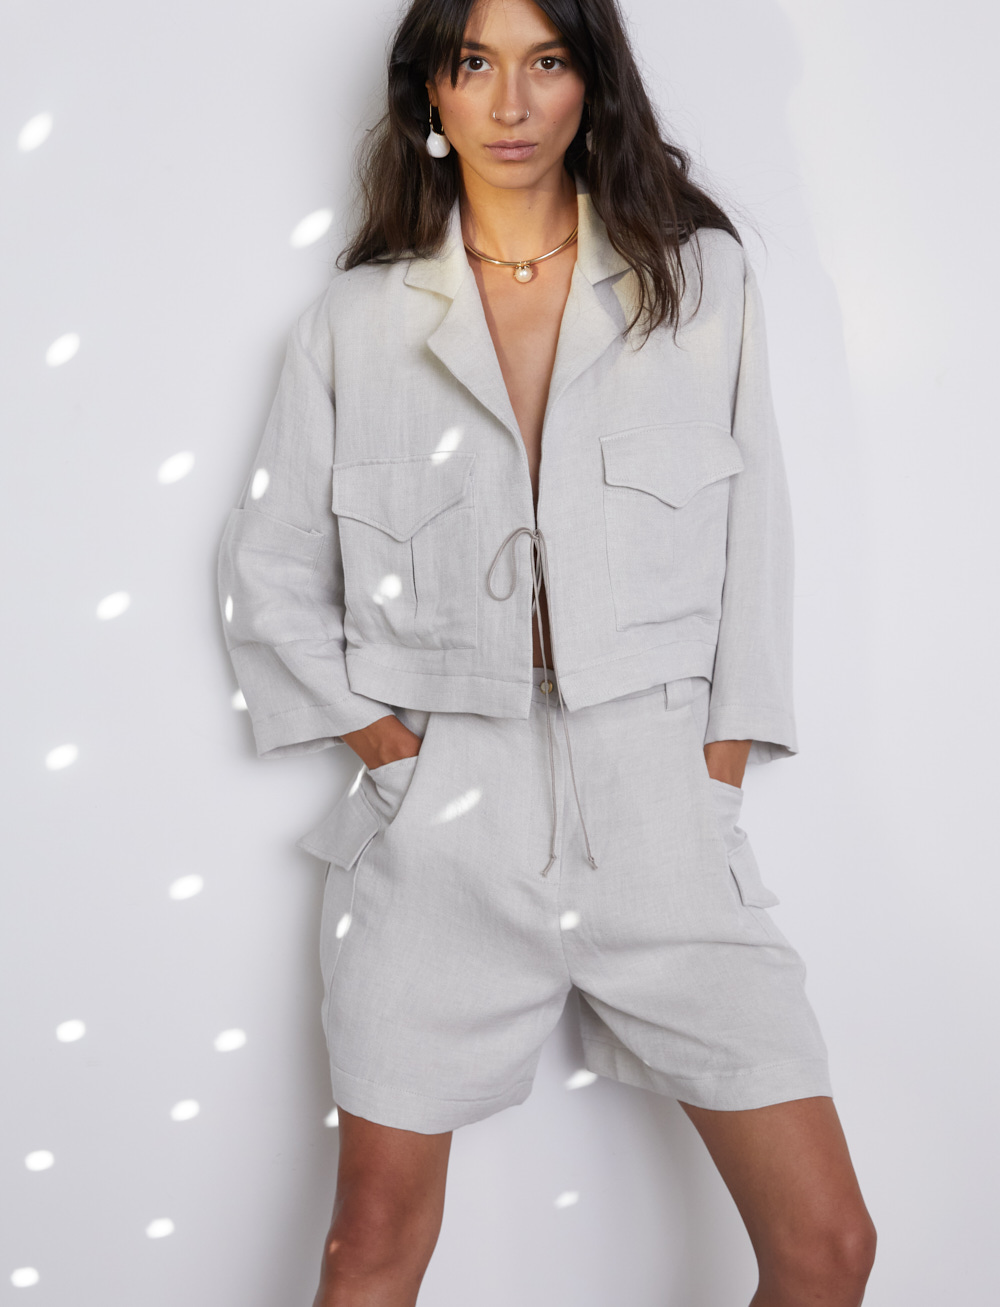 Mandalay Jacket by Manurí on curated-crowd.com